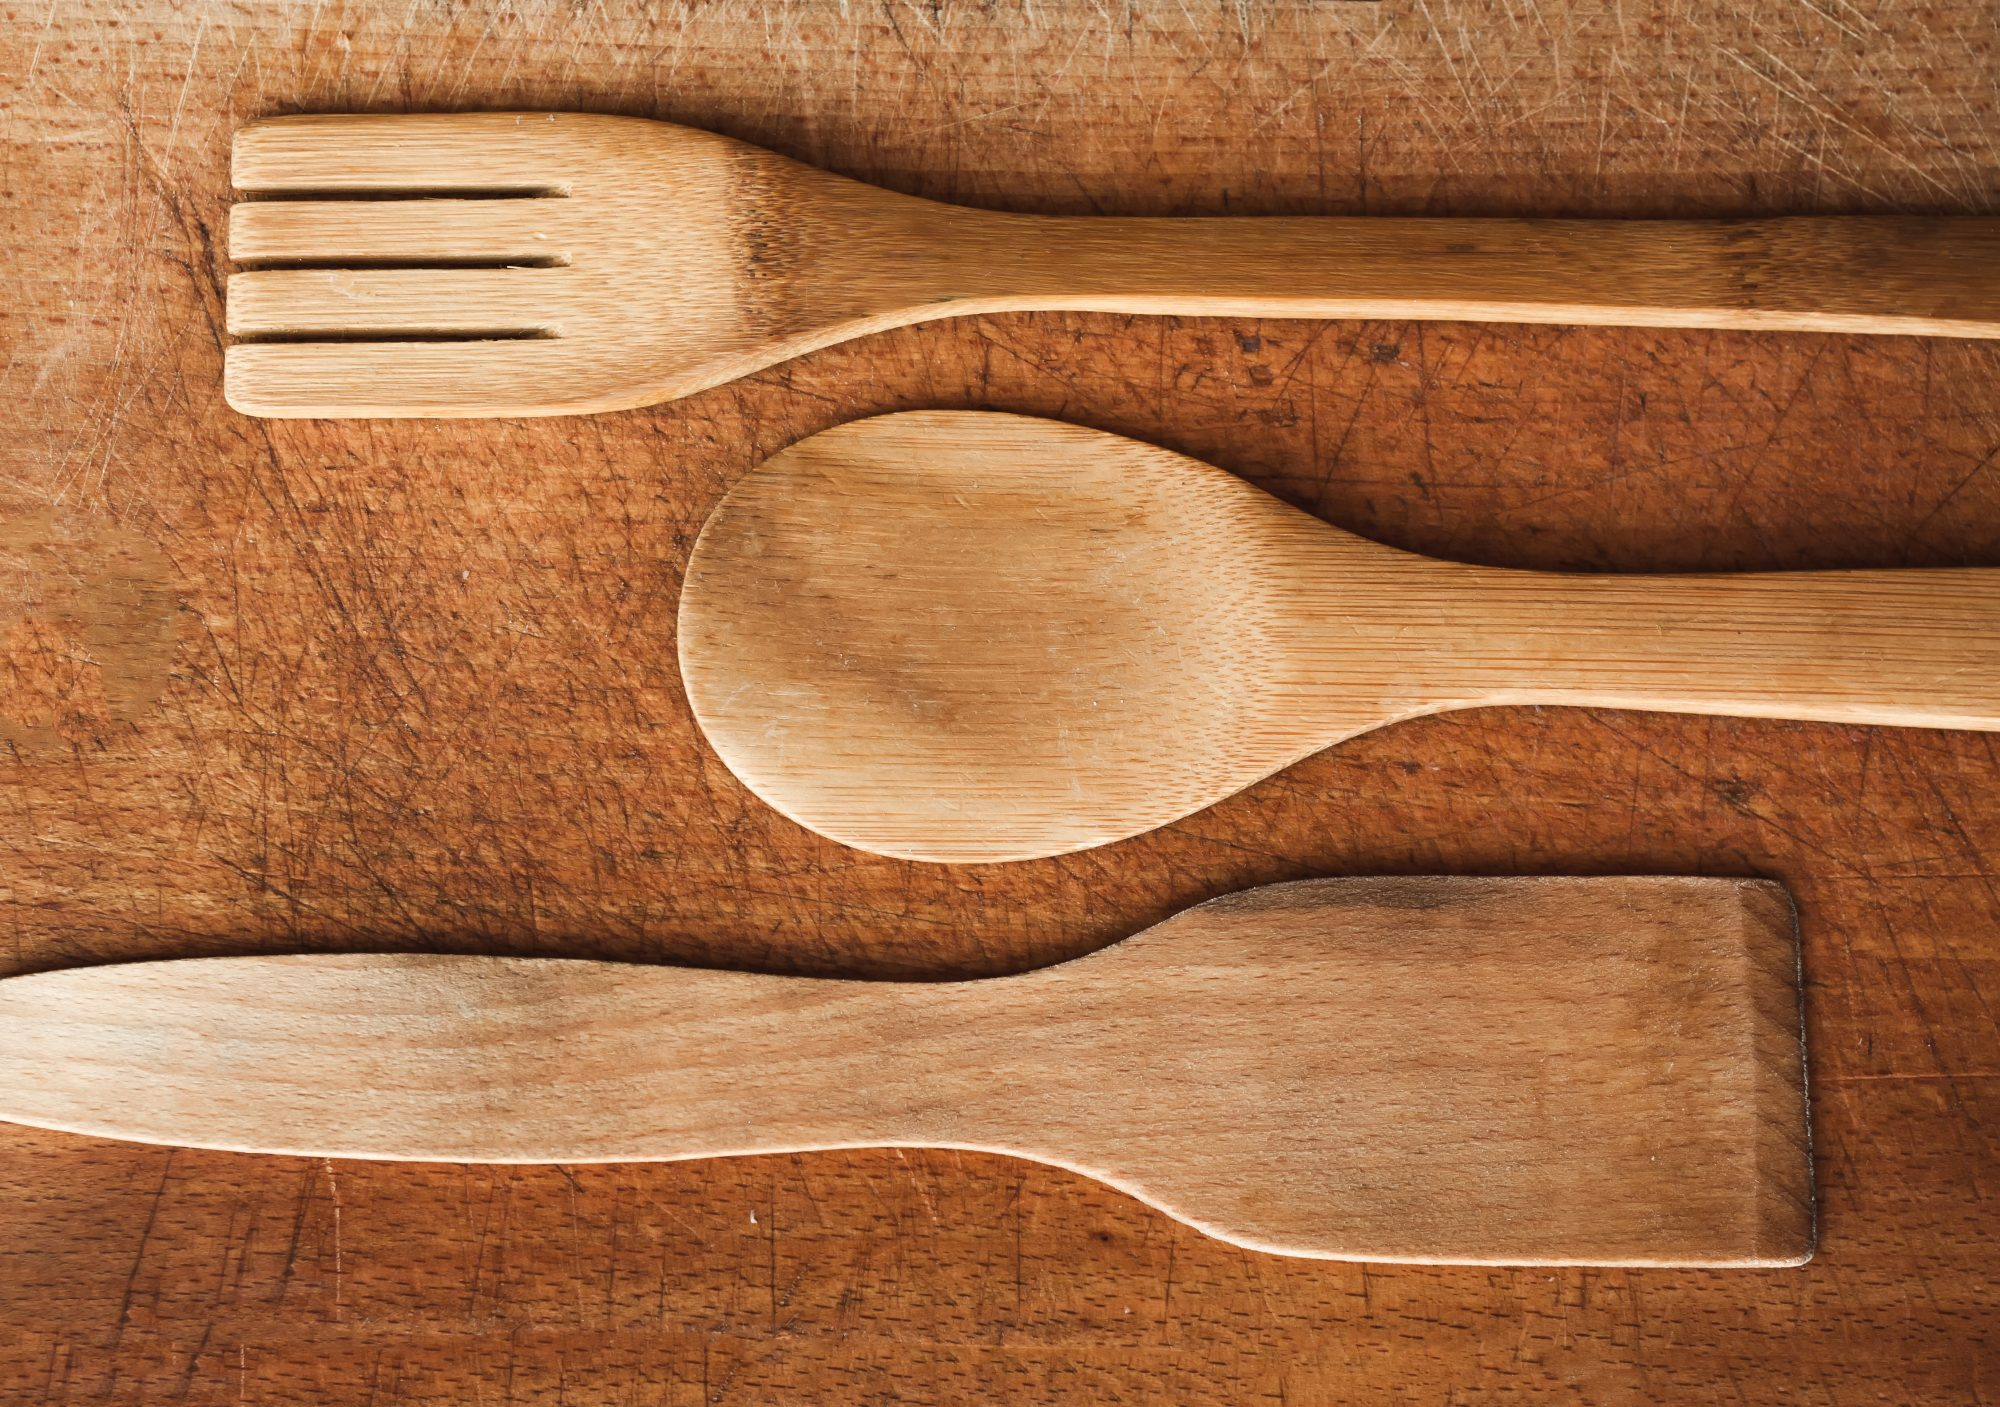 Wood Cutting Board and Spoons